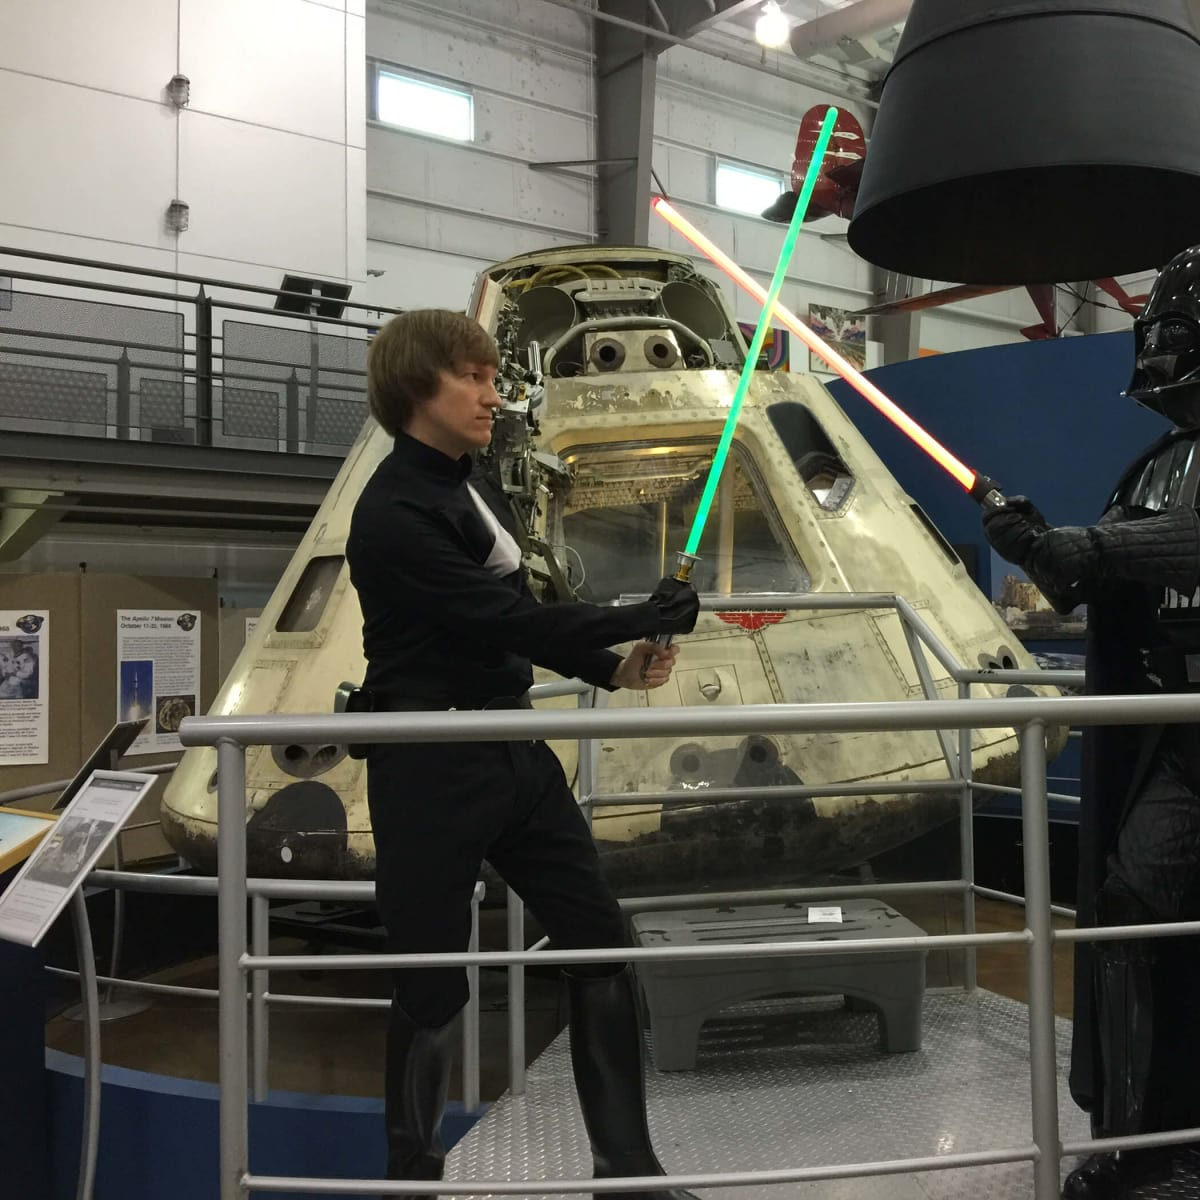 Frontiers of Flight Museum presents Star Wars Day at the Museum